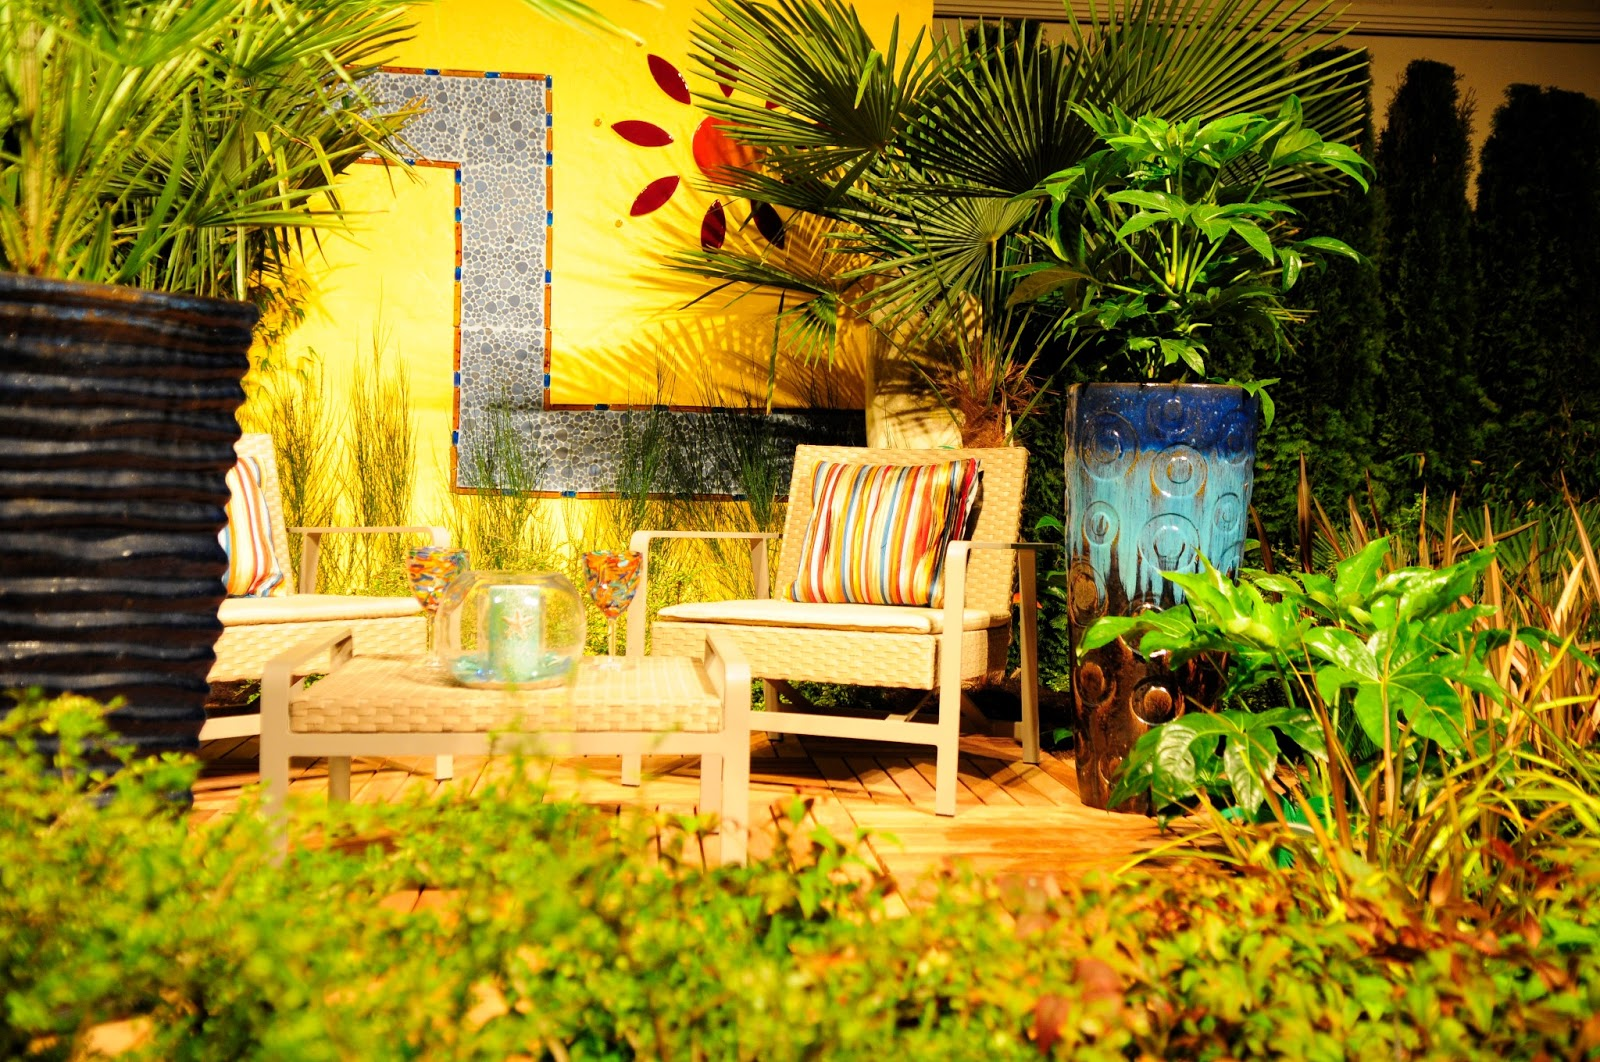 Dalle Galet Exterieur 10 Yellow Garden Ideas : Walls, Furniture Or Plants